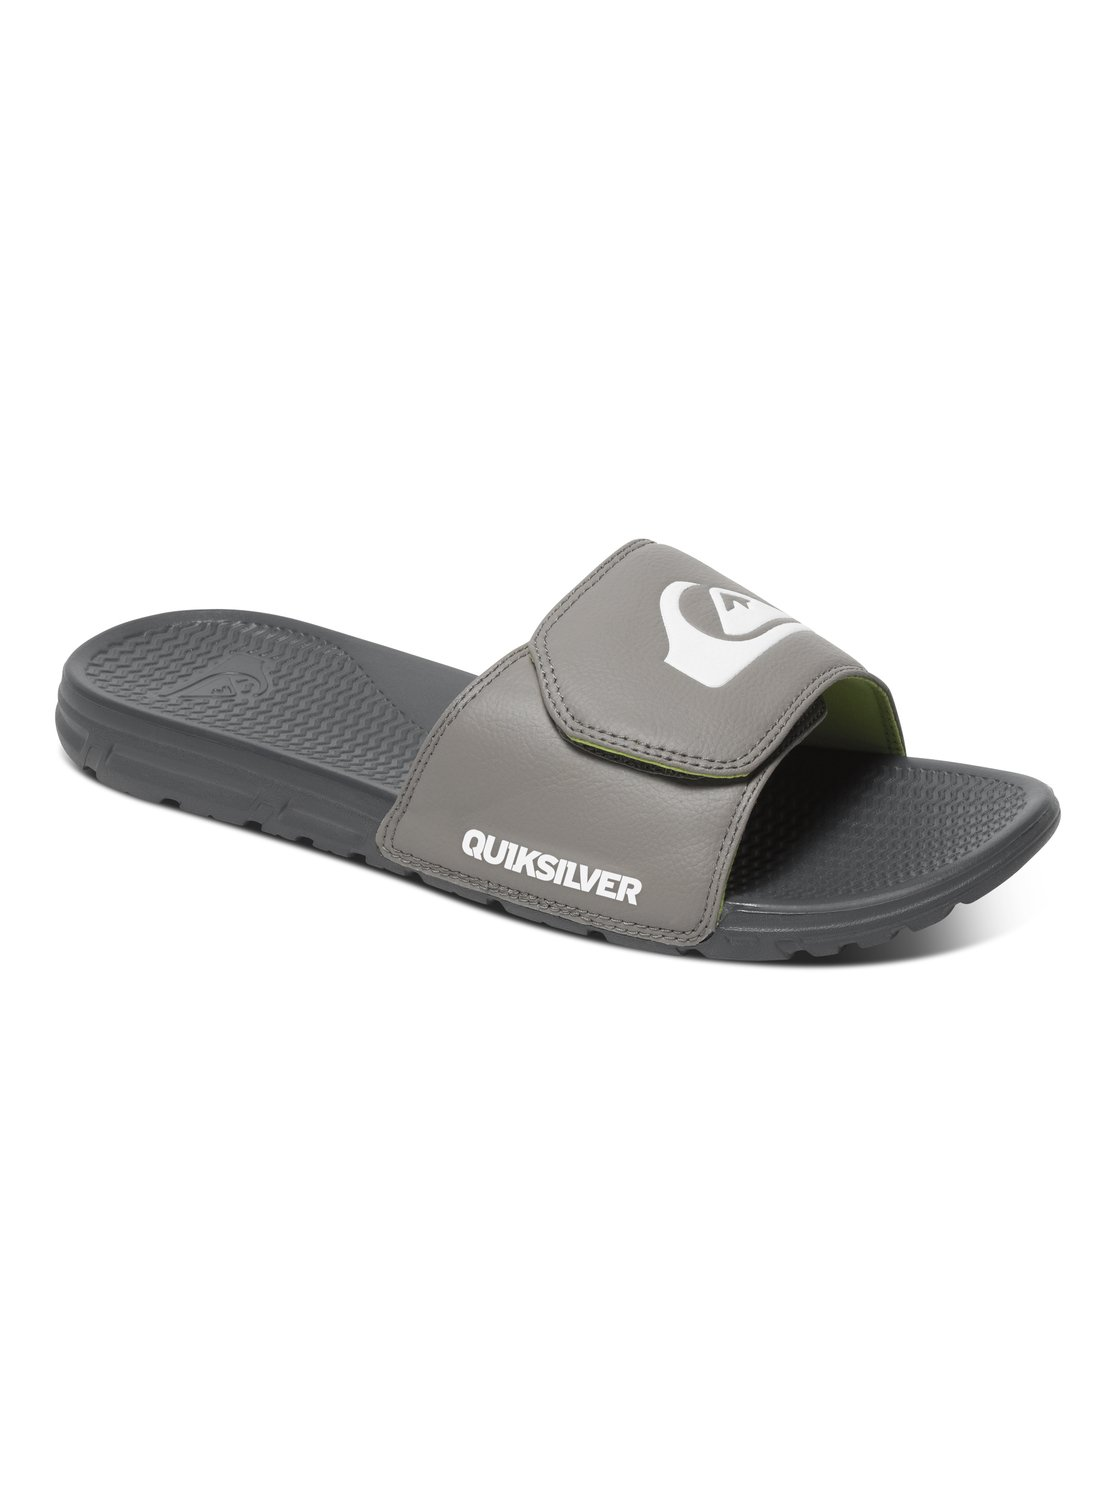 Tongs Quiksilver Shoreline Adjust fTd5bJRD6